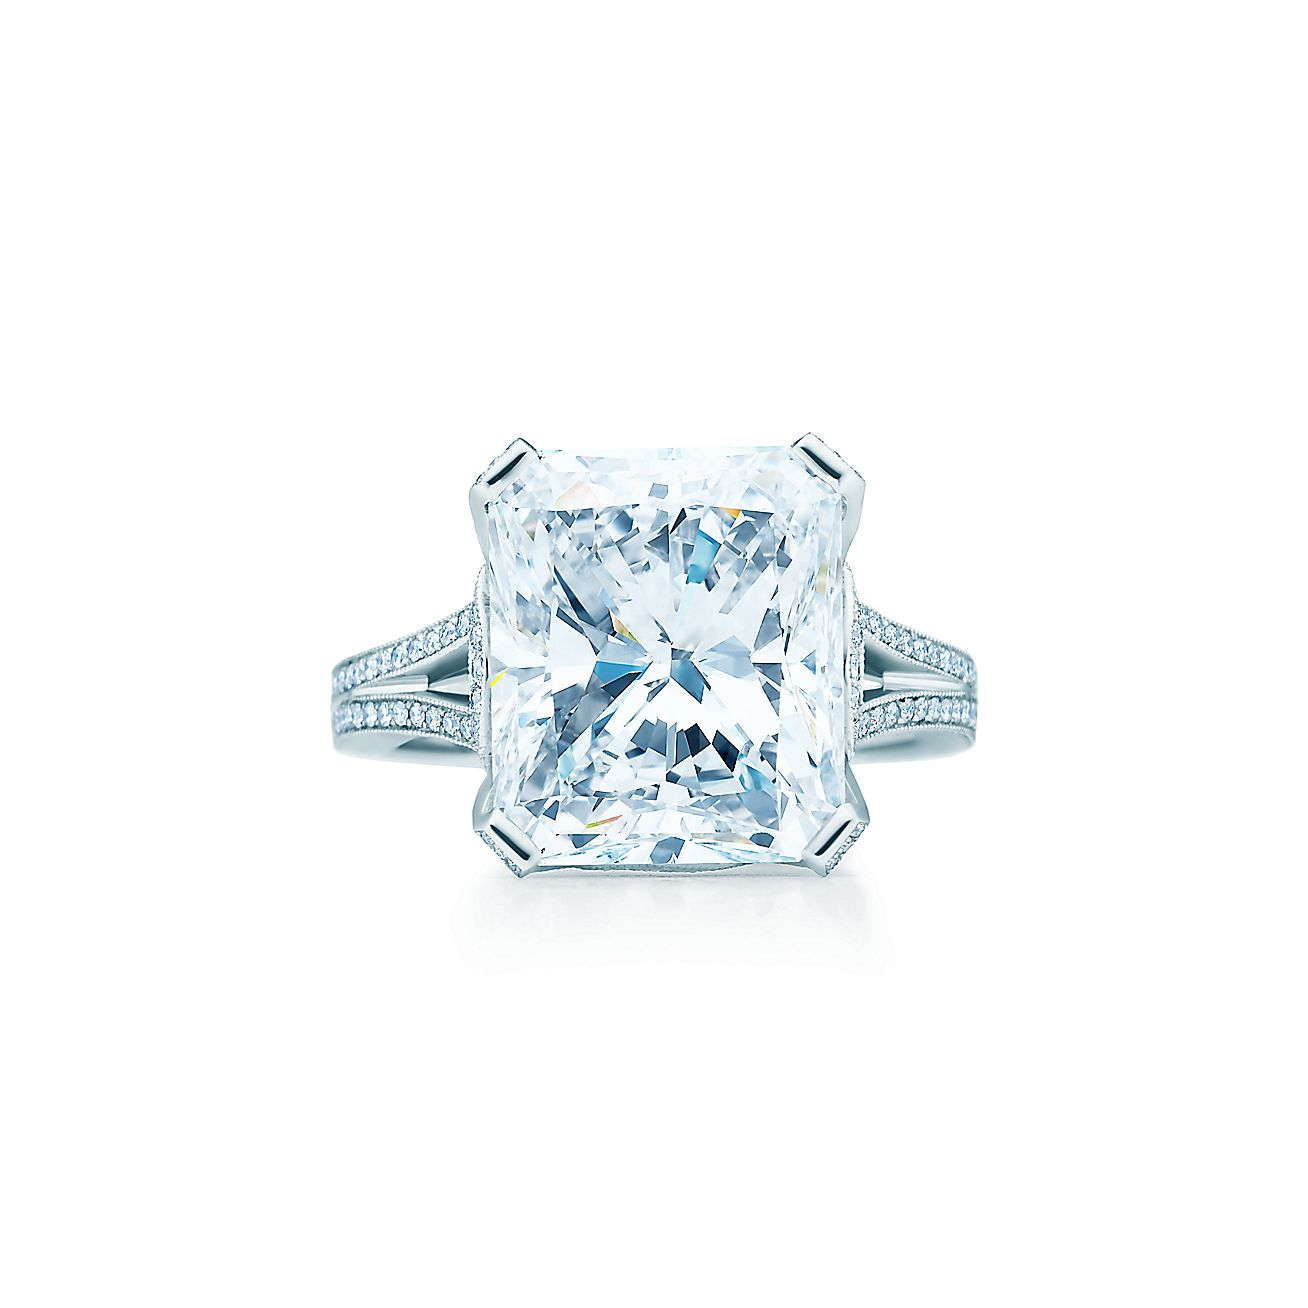 rectangular duquet design diamond portfolio horizontal evanston pave rings ring engagement christopher